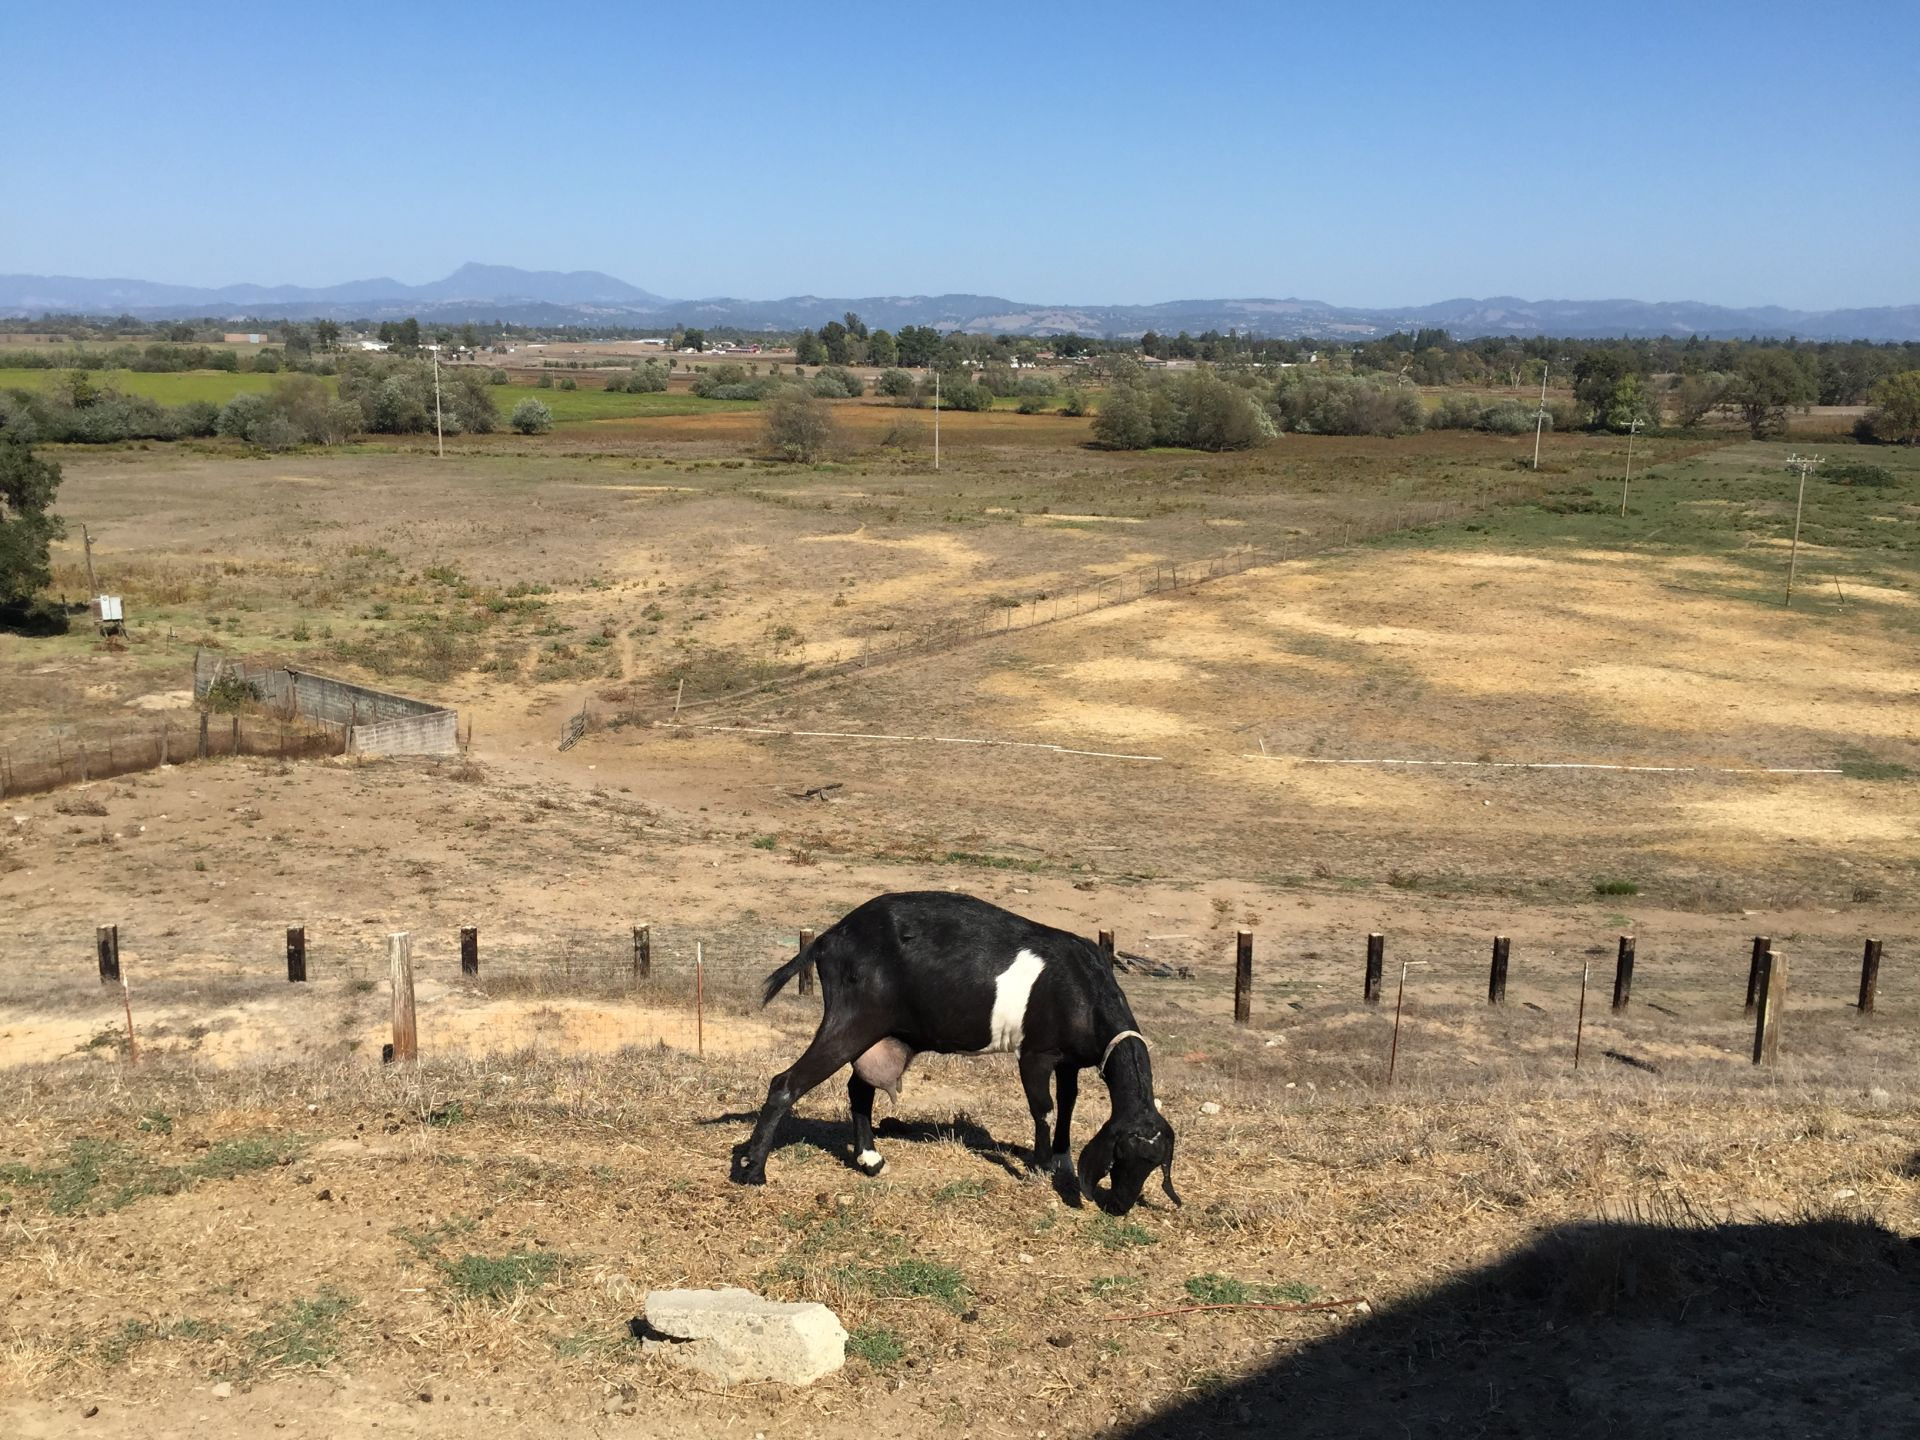 Not only does the creamery offer this view, but there are plenty of goats to play with.